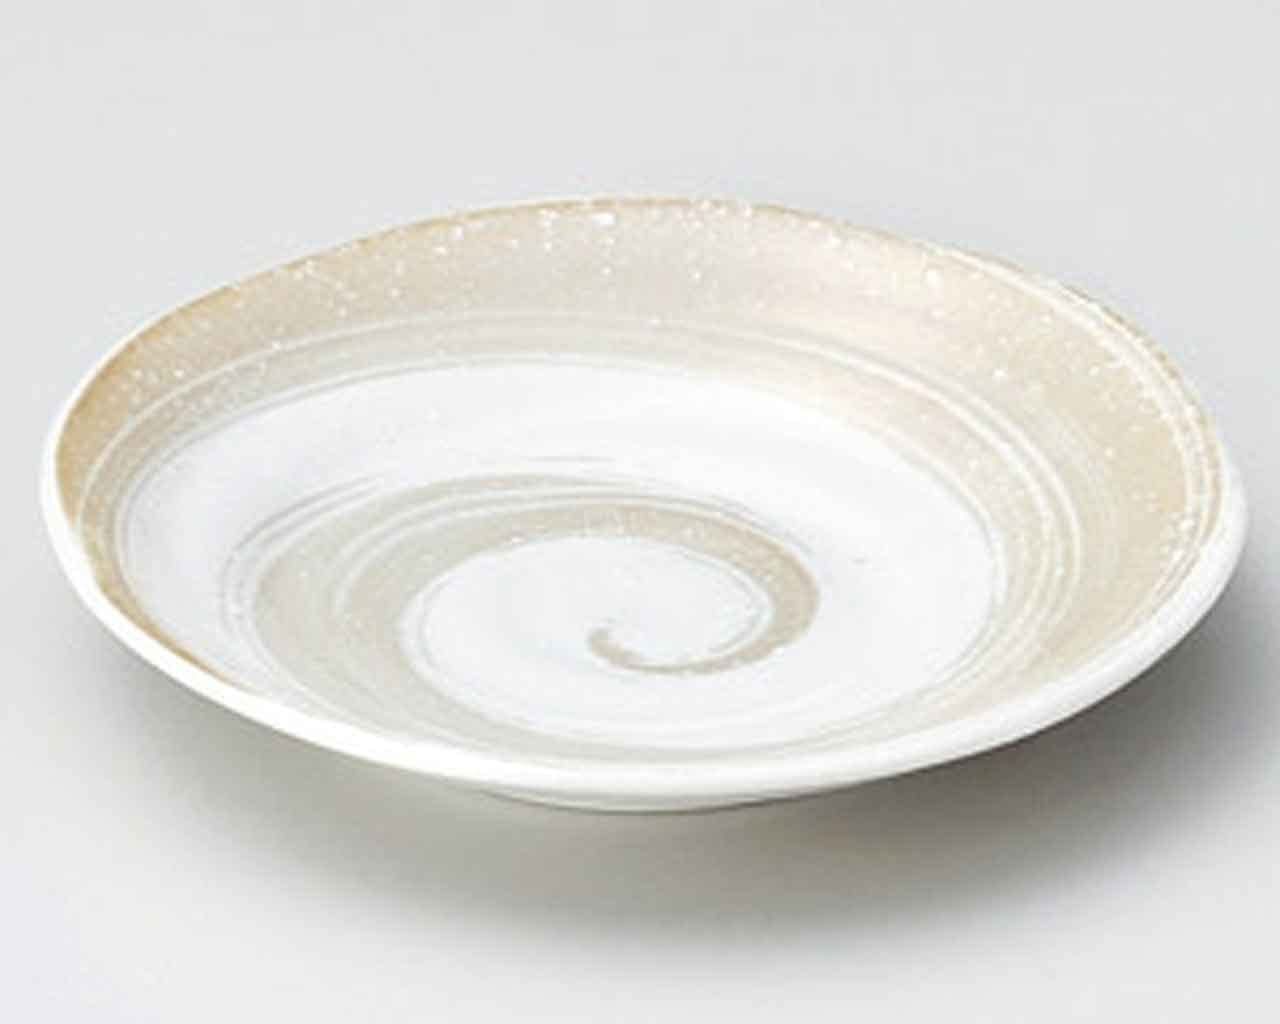 Moca Spiral 6.5inch Set of 5 Small Plates White porcelain Made in Japan